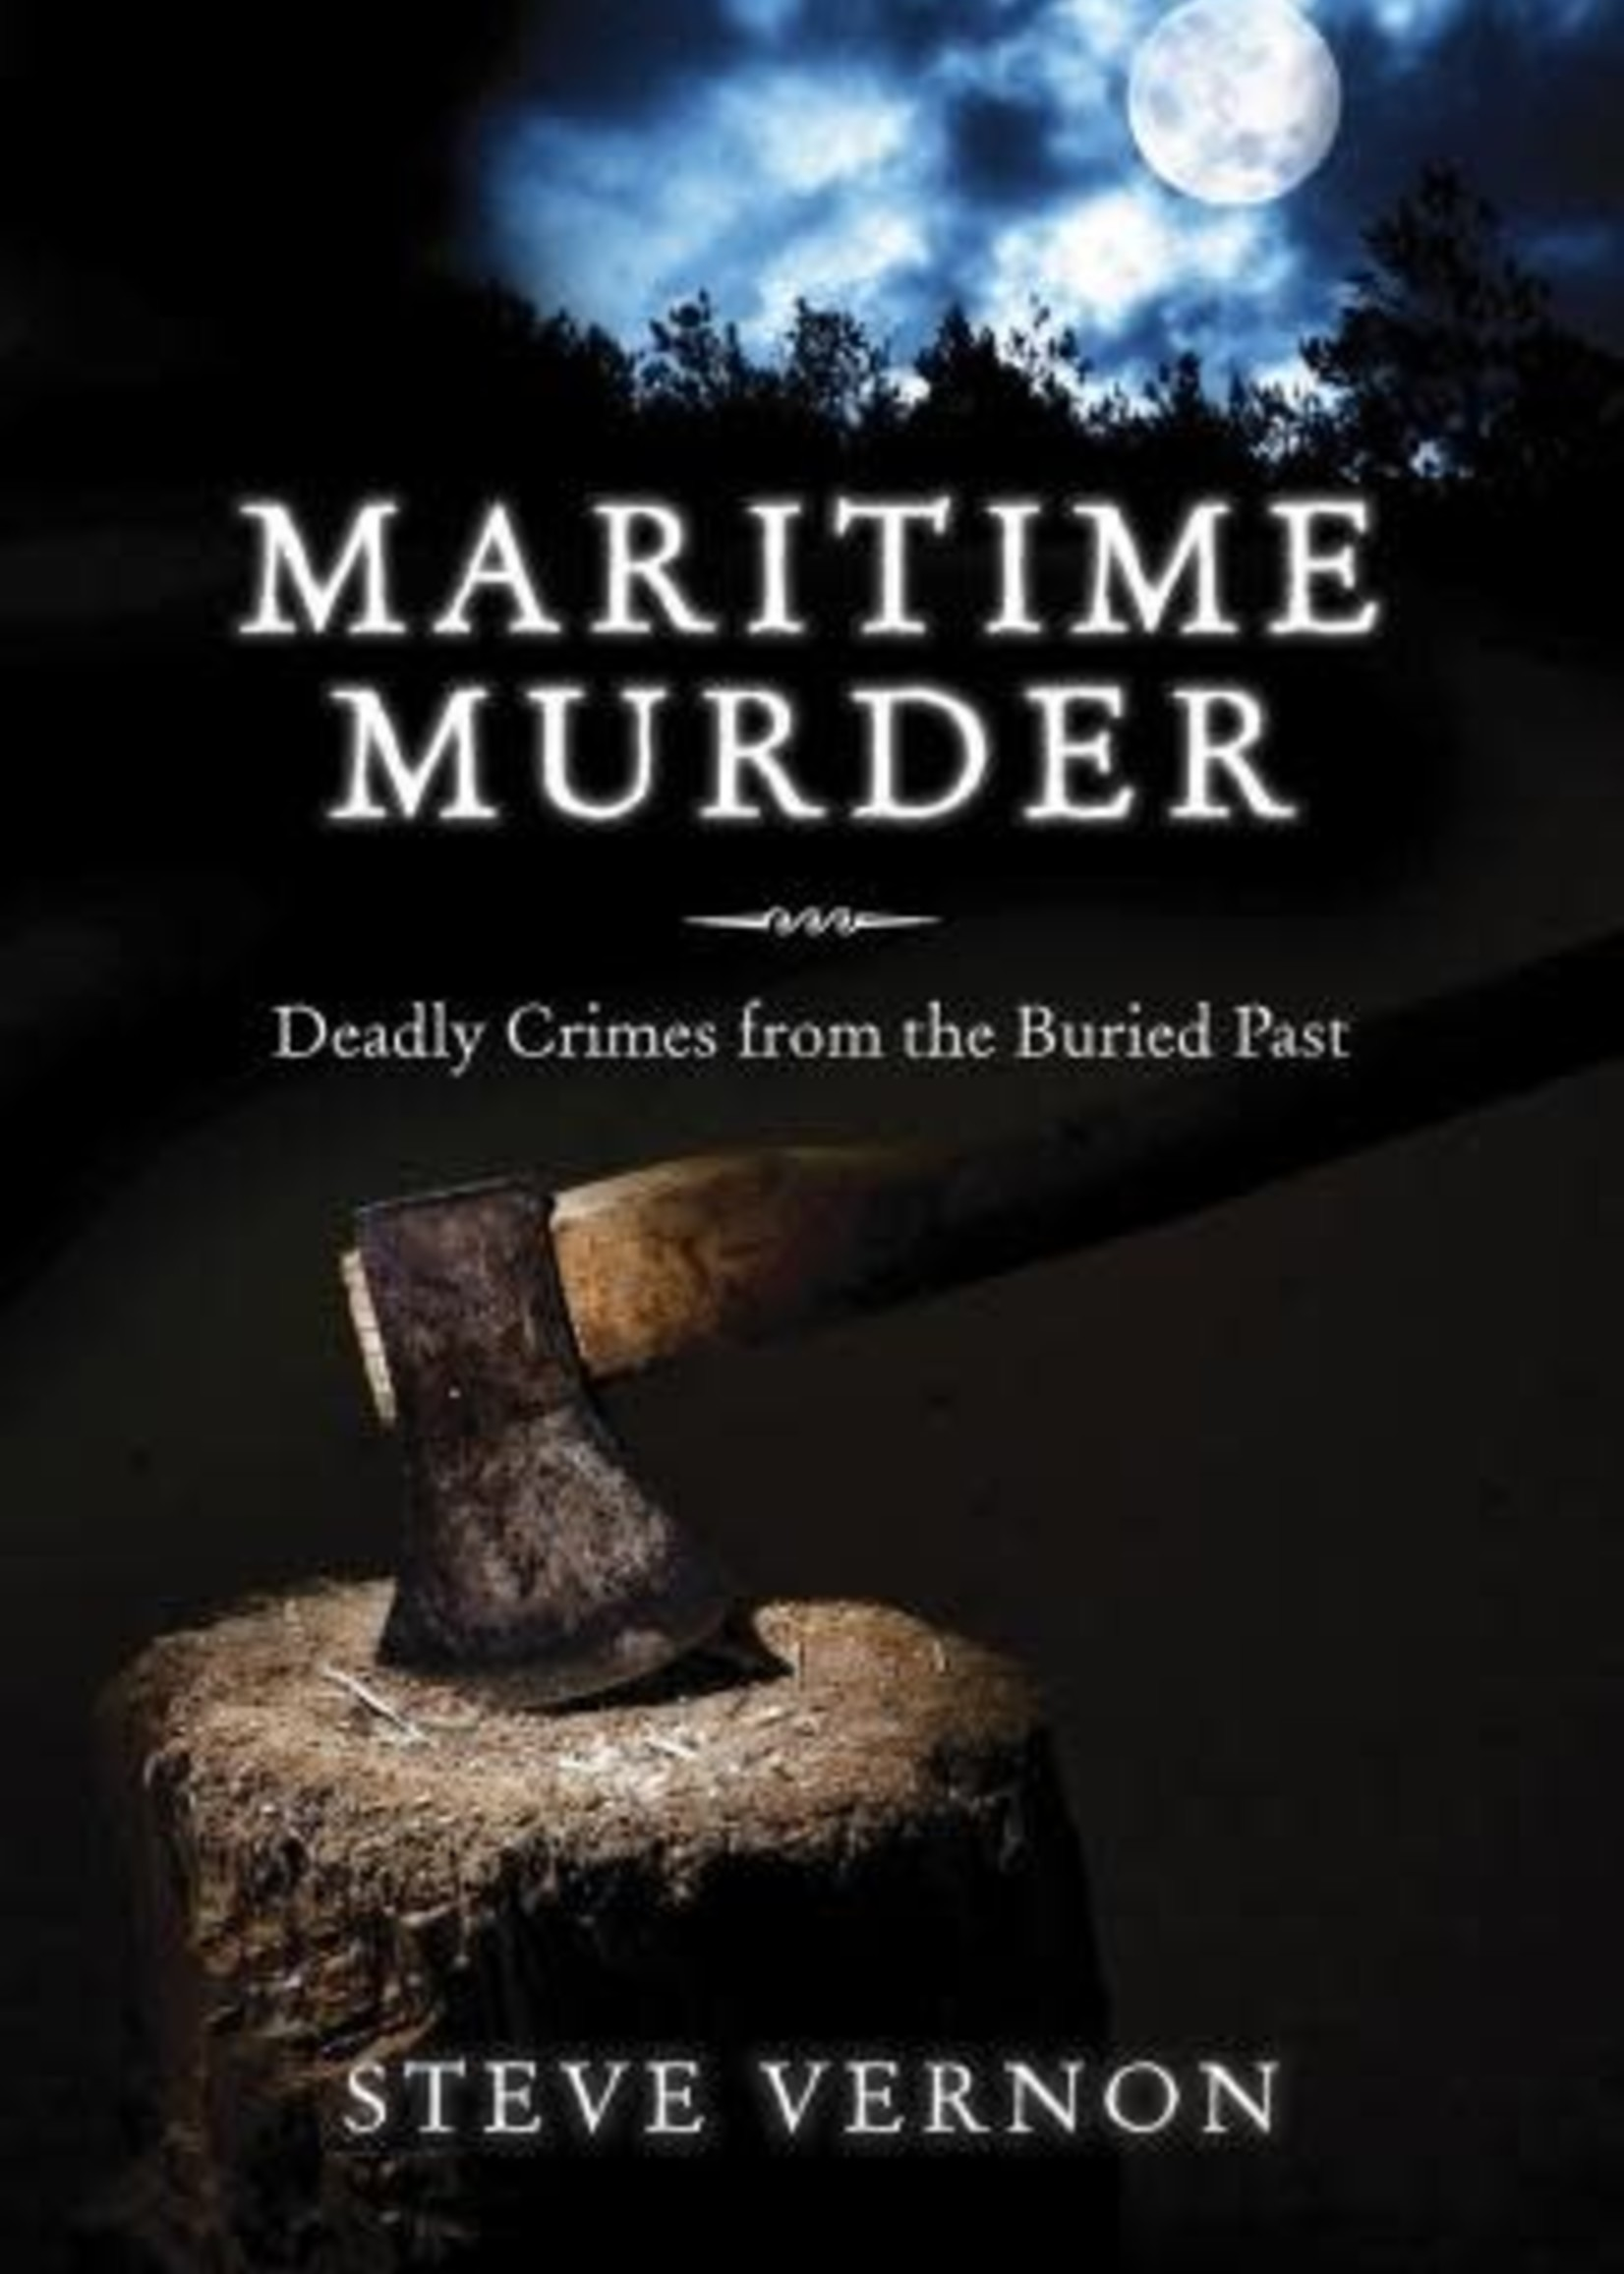 Maritime Murder Deadly Crimes from the Buried Past by Steve Vernon